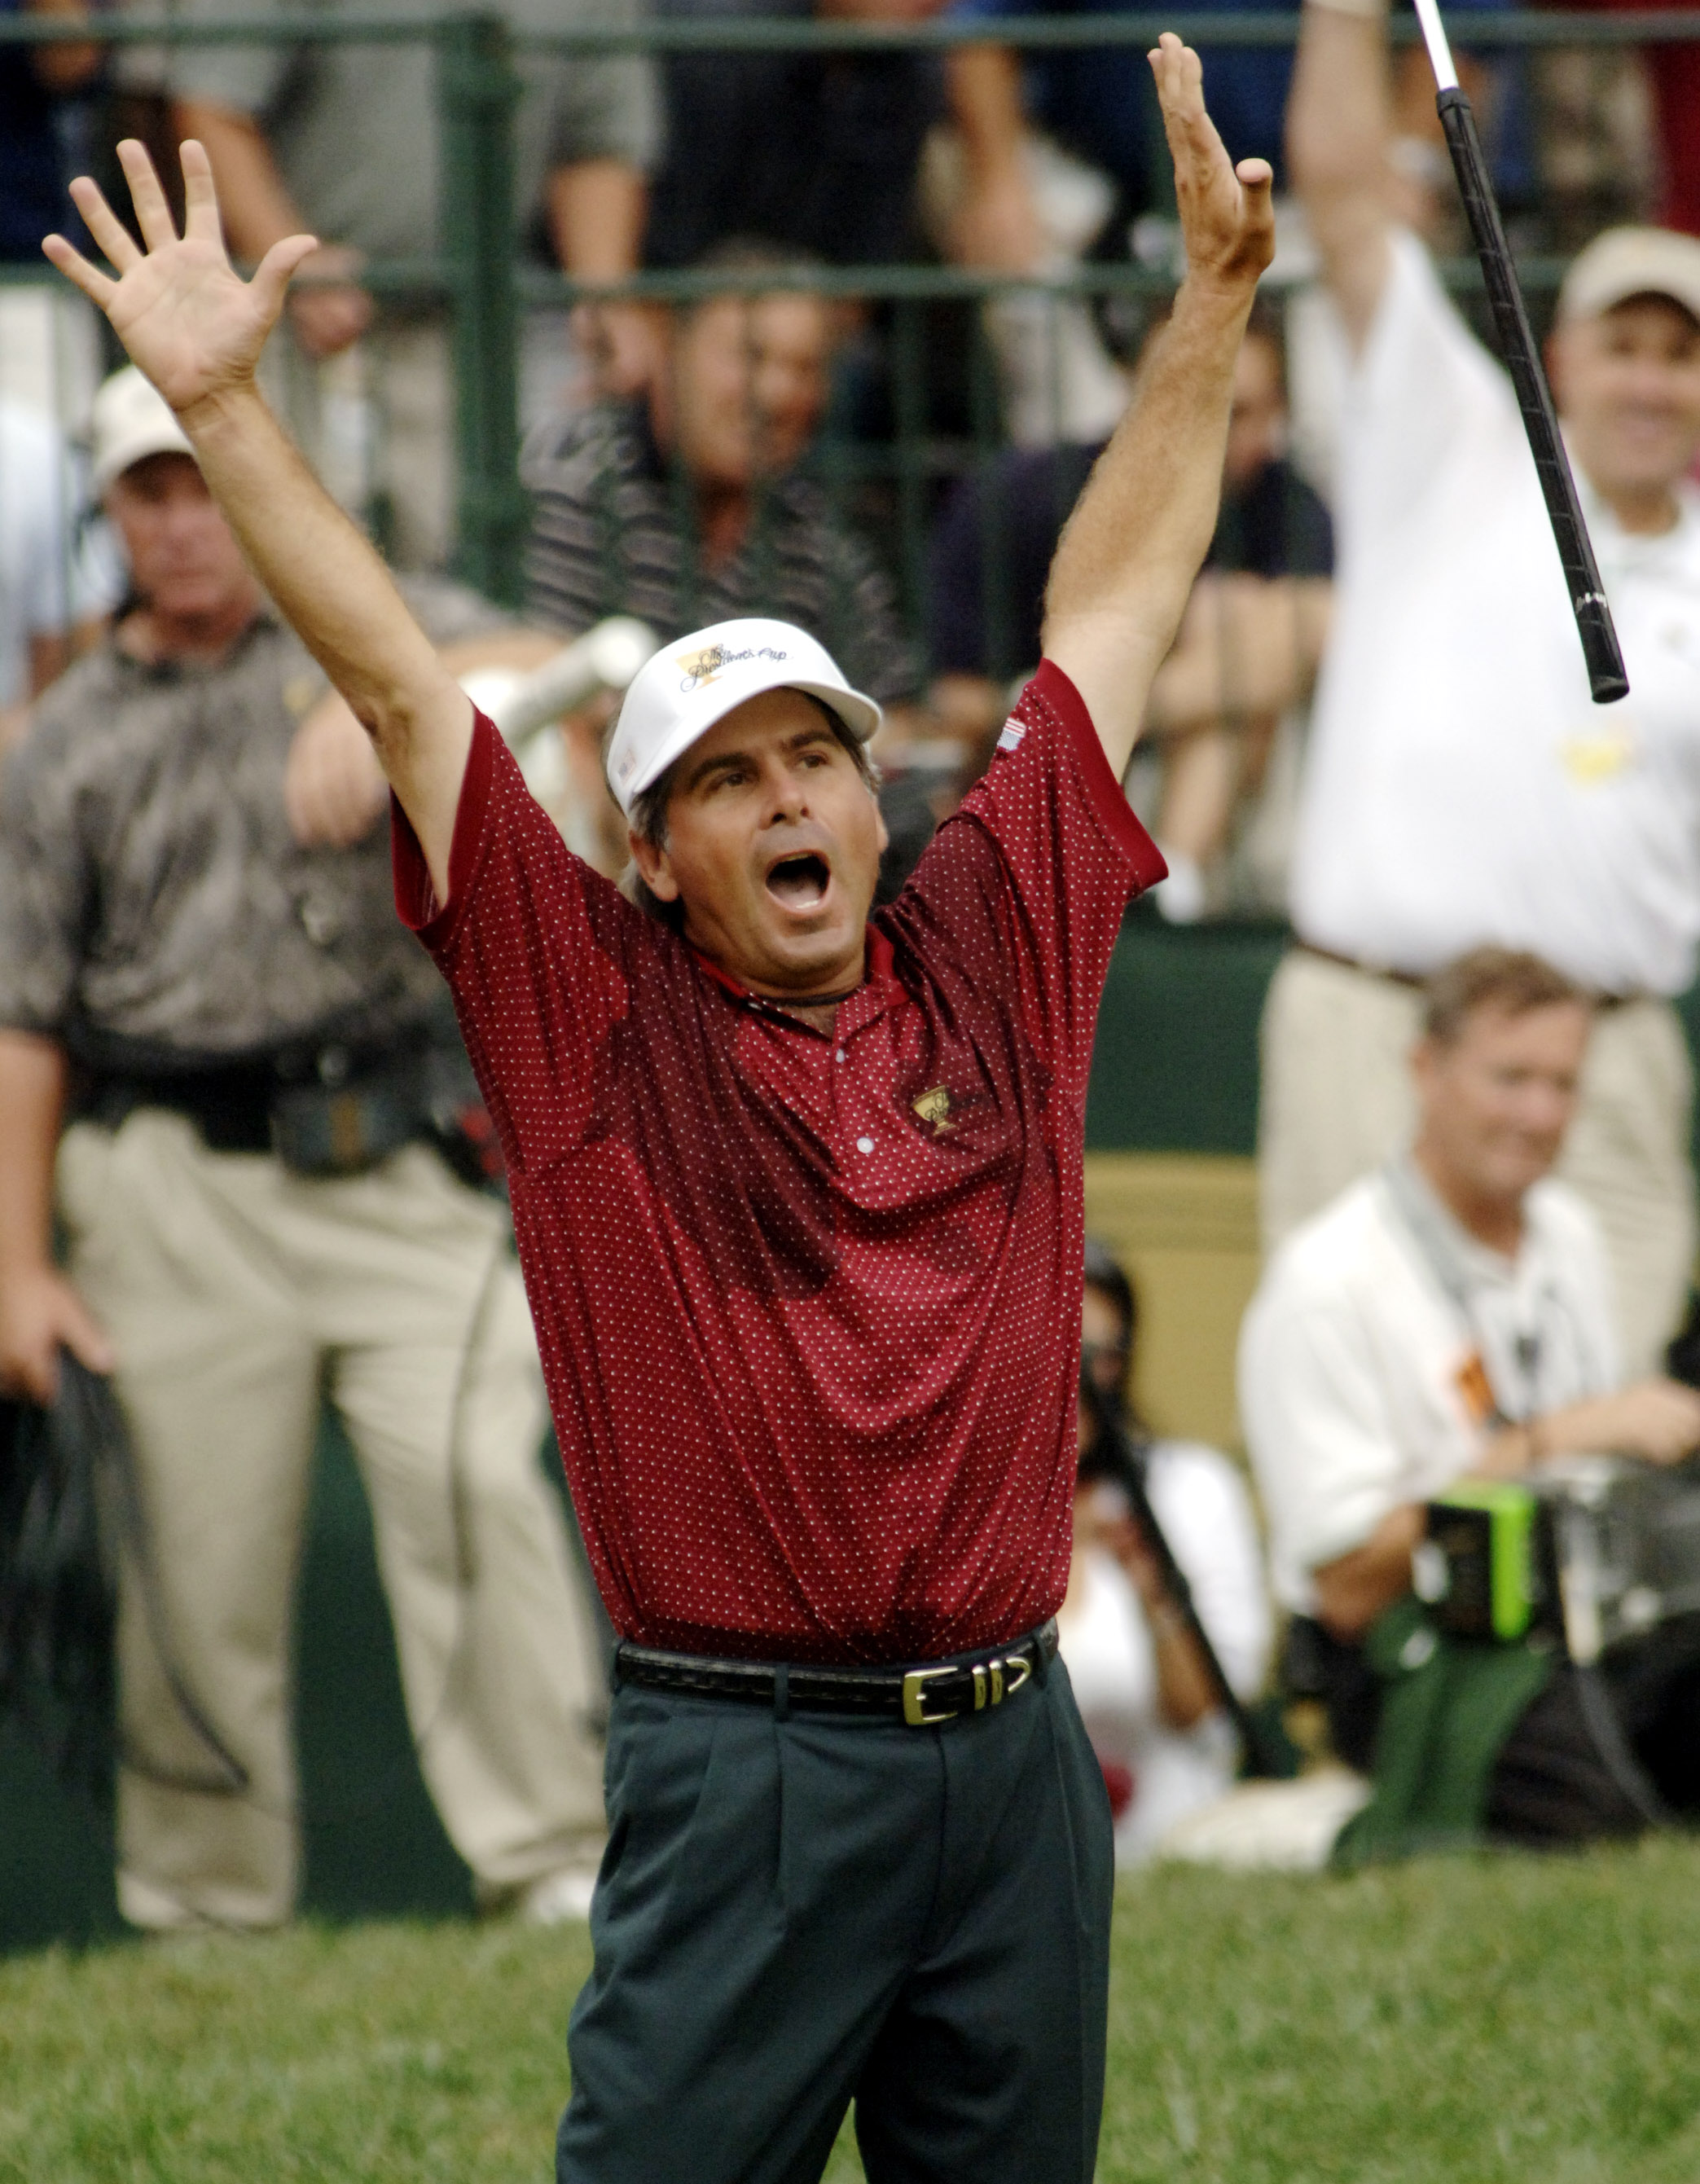 FILE - In this Sept. 25, 2005, file photo, Fred Couples, of the United States, throws his putter after dropping a birdie putt on the 18th hole to beat Vijay Singh, of Fiji, 1-up, in their Presidents Cup singles match at the Robert Trent Jones Golf Club in